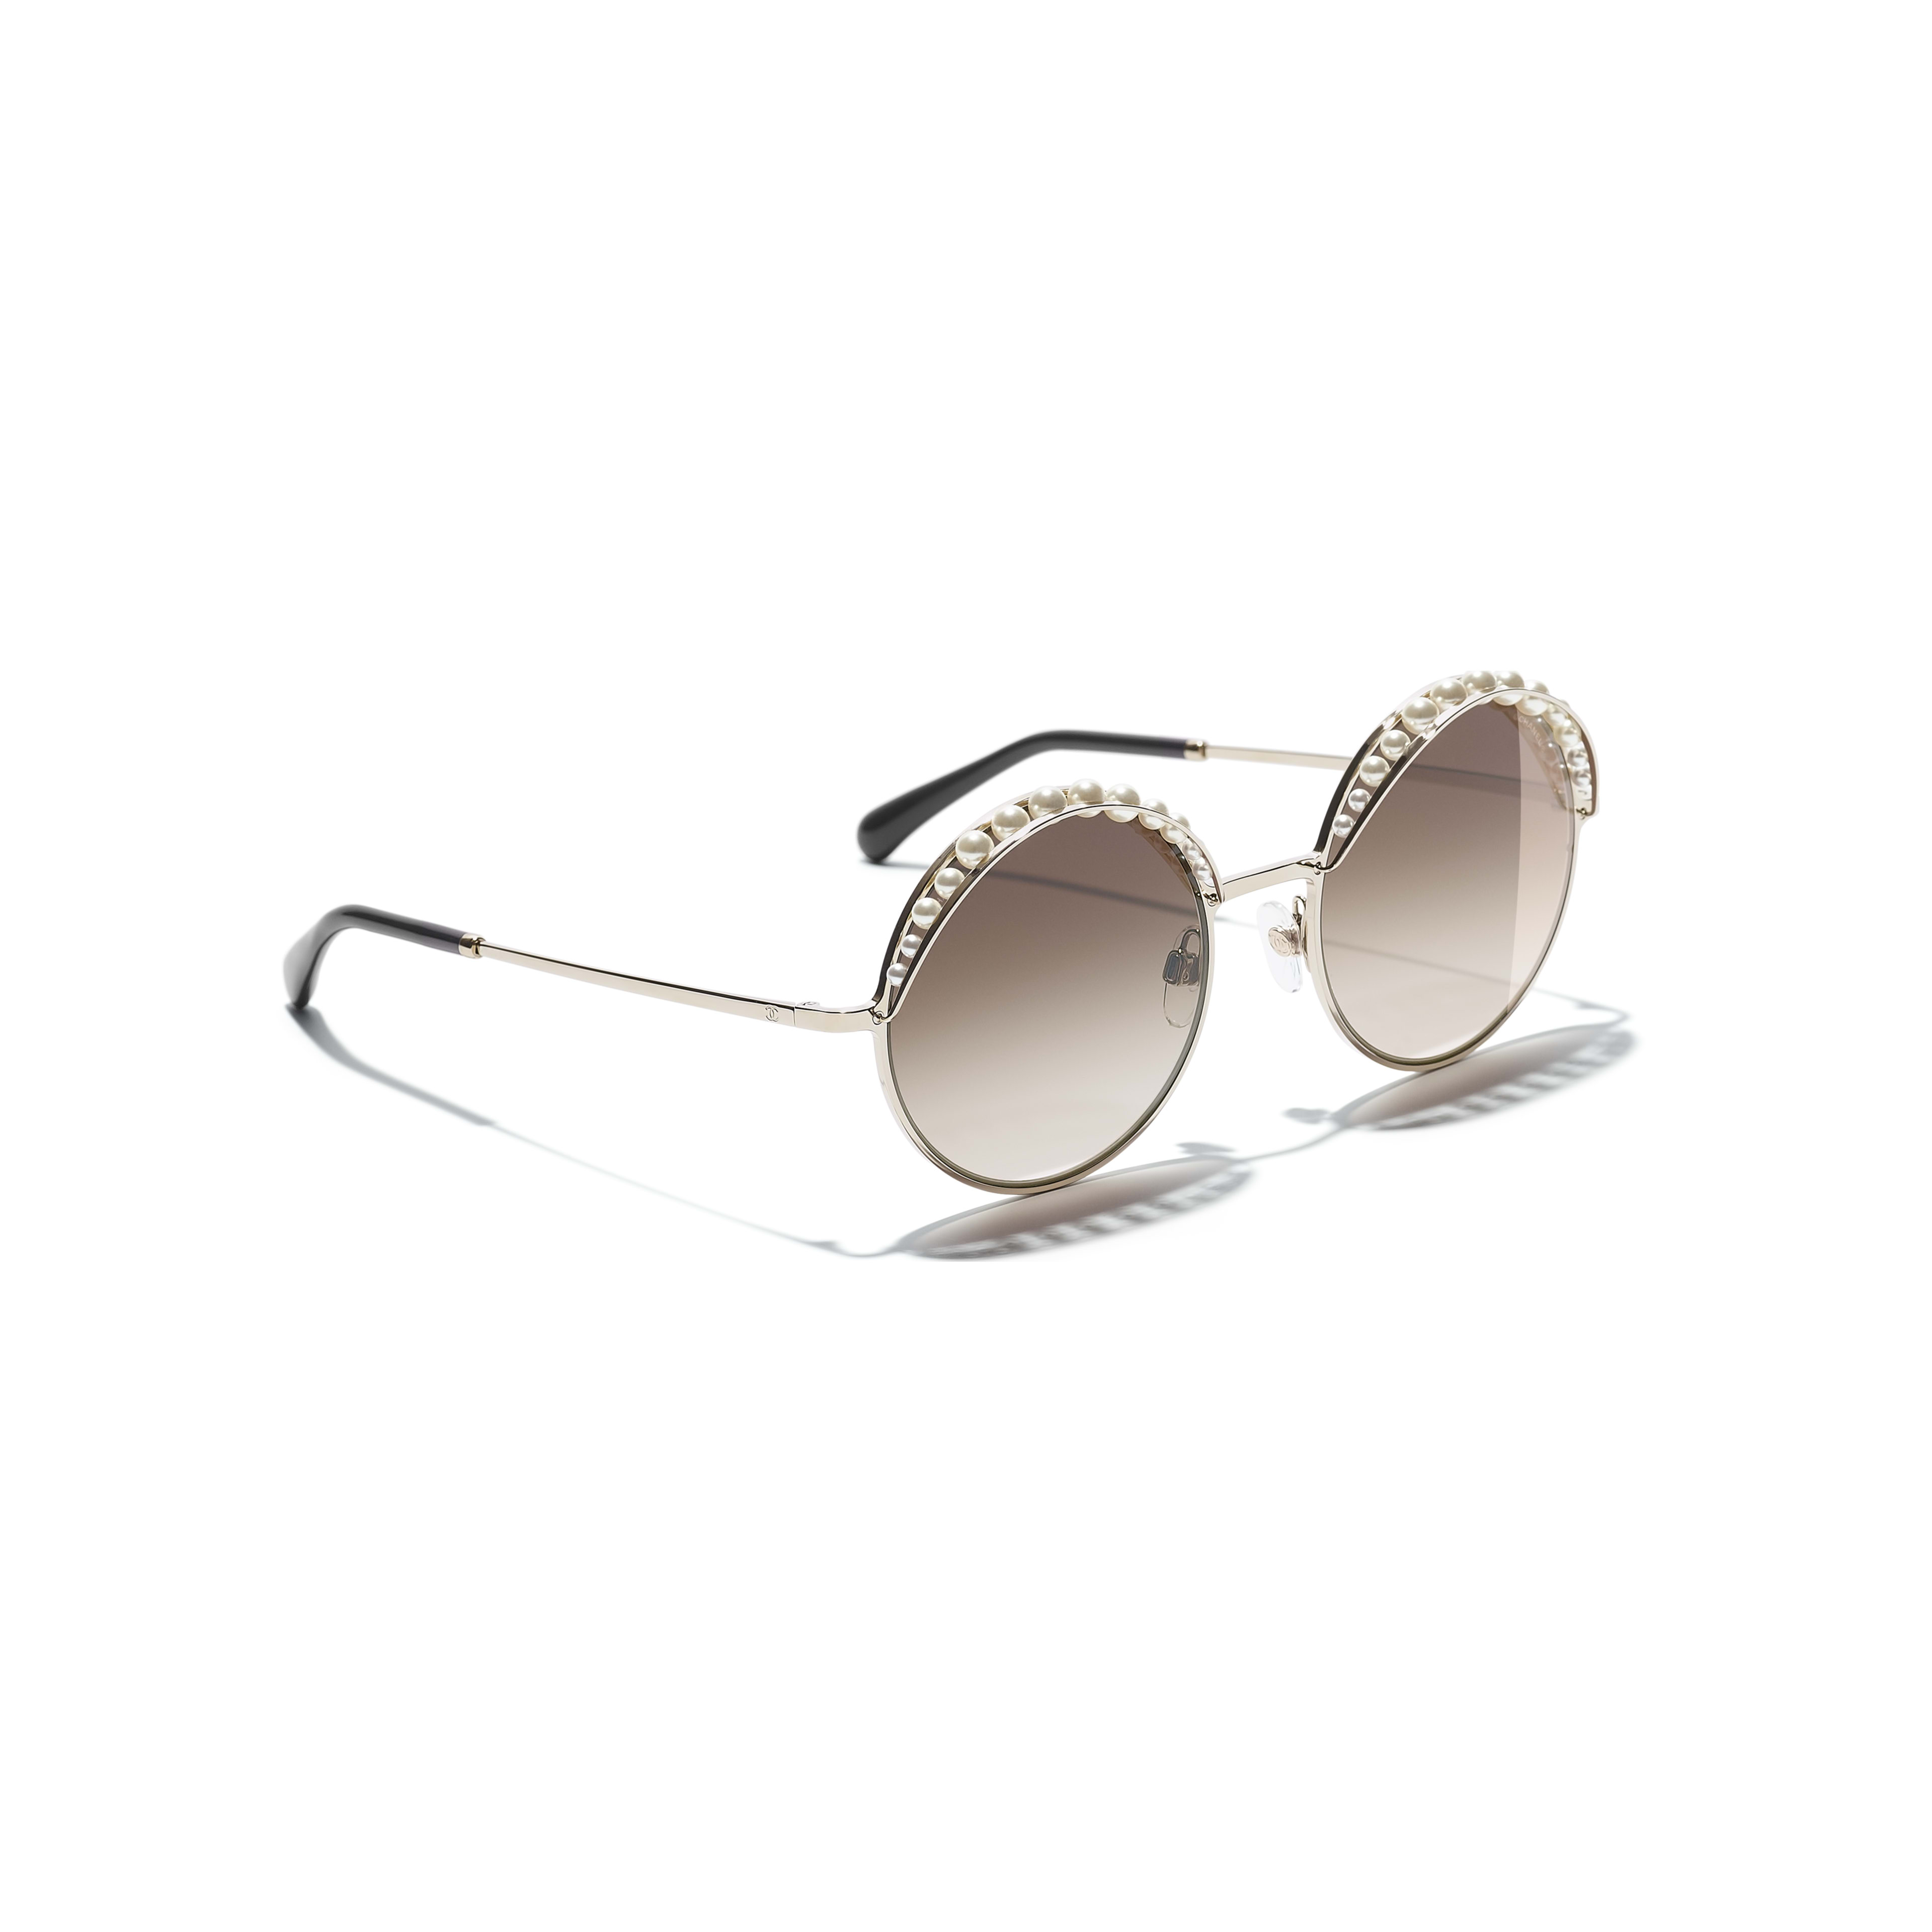 Round Sunglasses - Gold - Metal & Imitation Pearls - Extra view - see full sized version